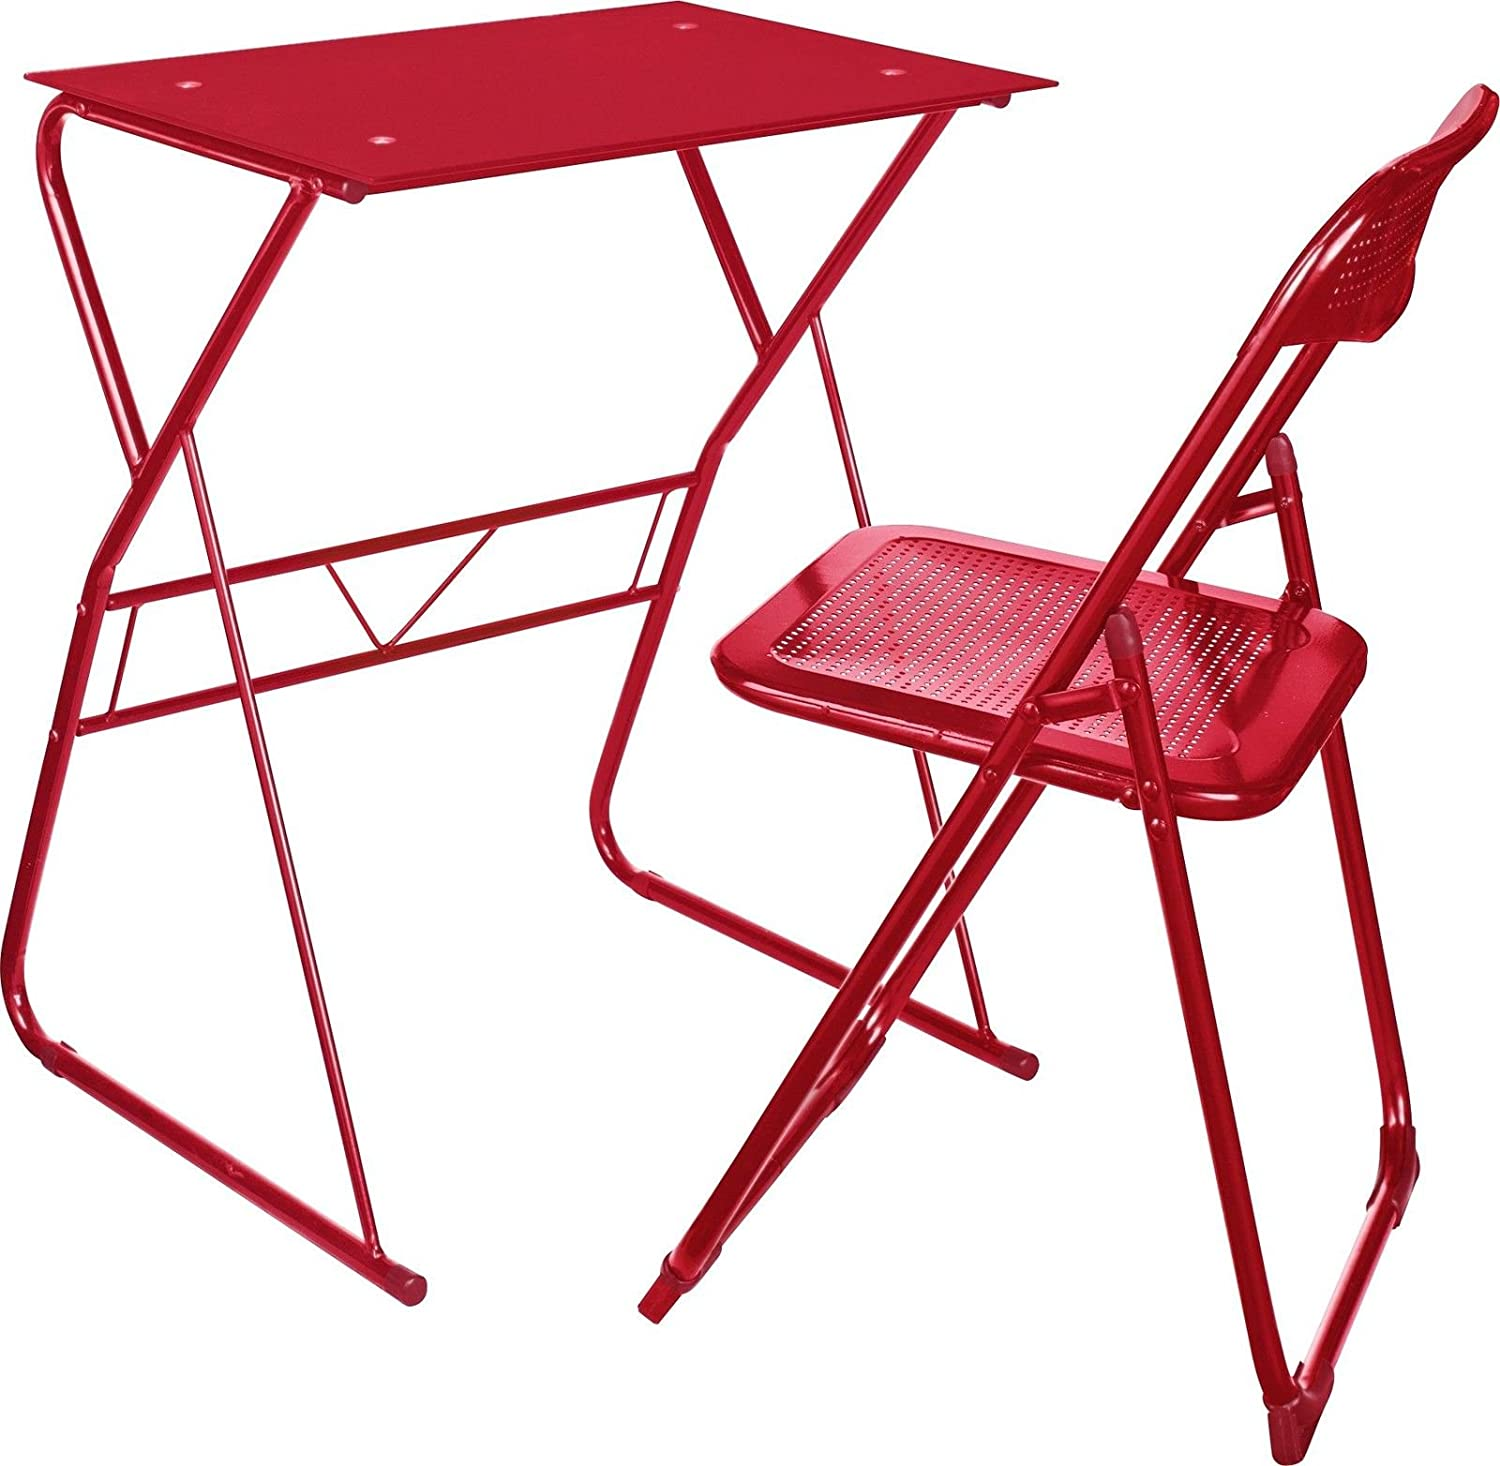 Peachy Argos Office In A Box Desk Chair Set Red 241 4979 Amazon Short Links Chair Design For Home Short Linksinfo